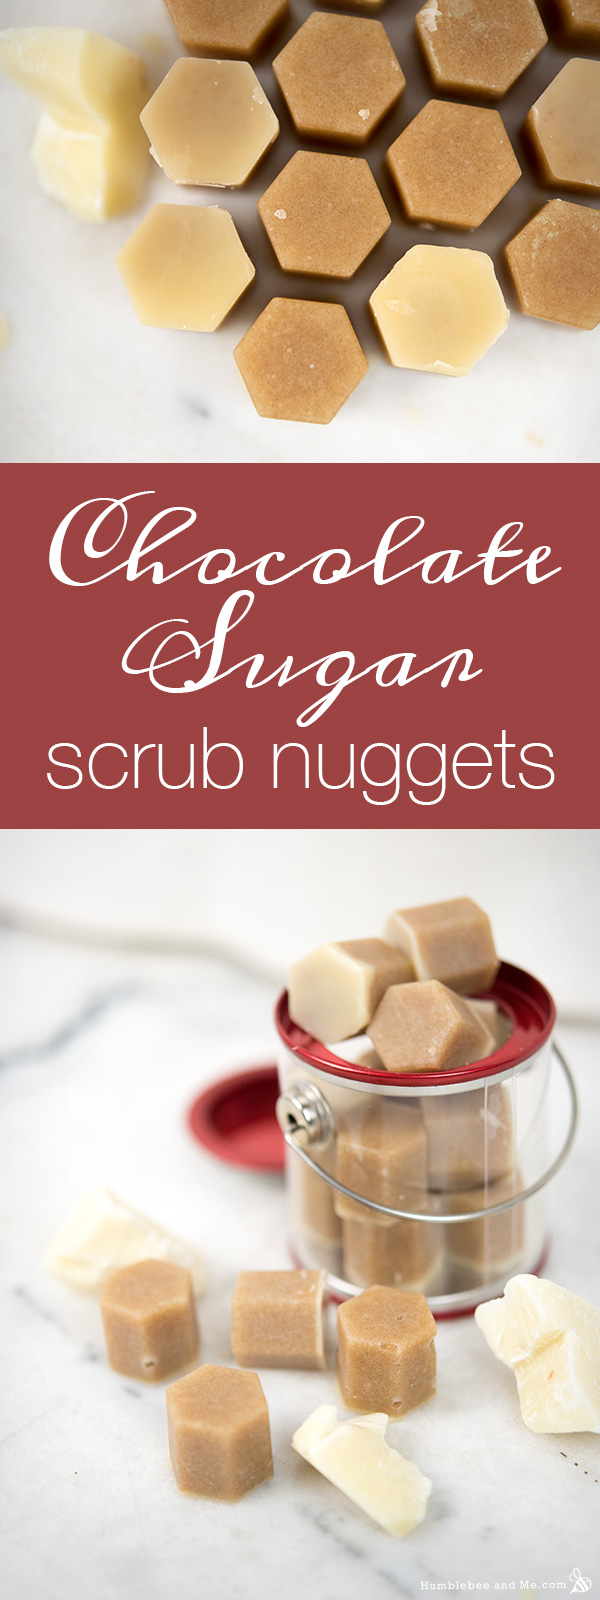 How to Make Chocolate Sugar Scrub Nuggets